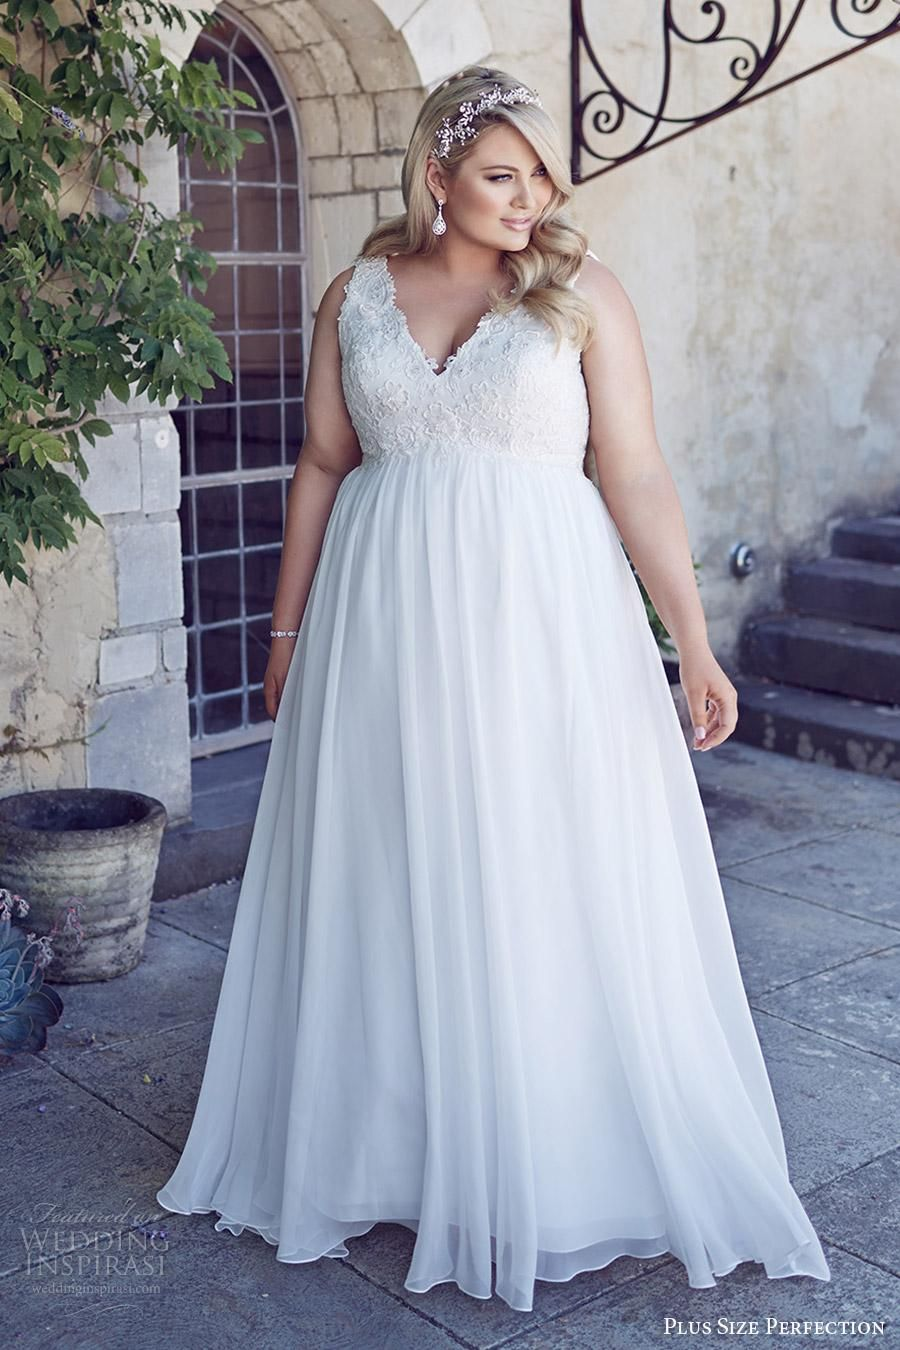 2016 new summer plus size wedding dresses with empire high waist 2016 new summer plus size wedding dresses with empire high waist line for maternity curvy brides ombrellifo Images